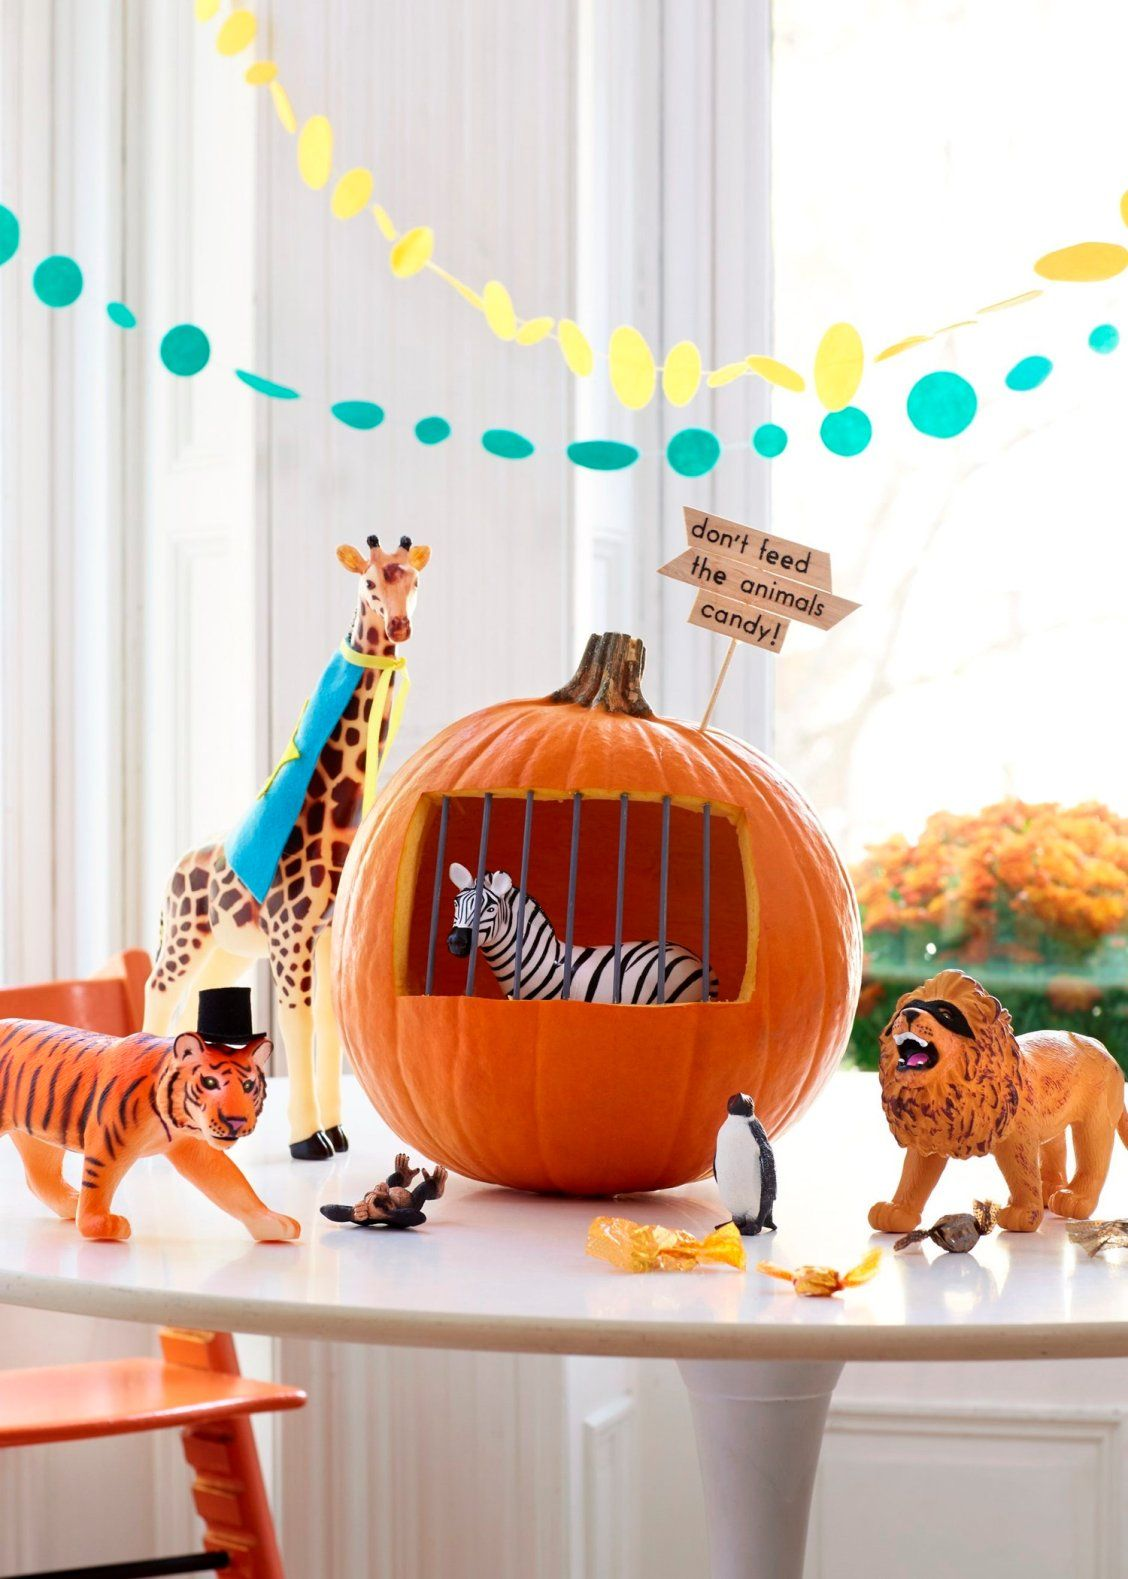 6 Adorable Ways to Decorate Halloween Pumpkins with Kids Pumpkin - Decorating For Halloween